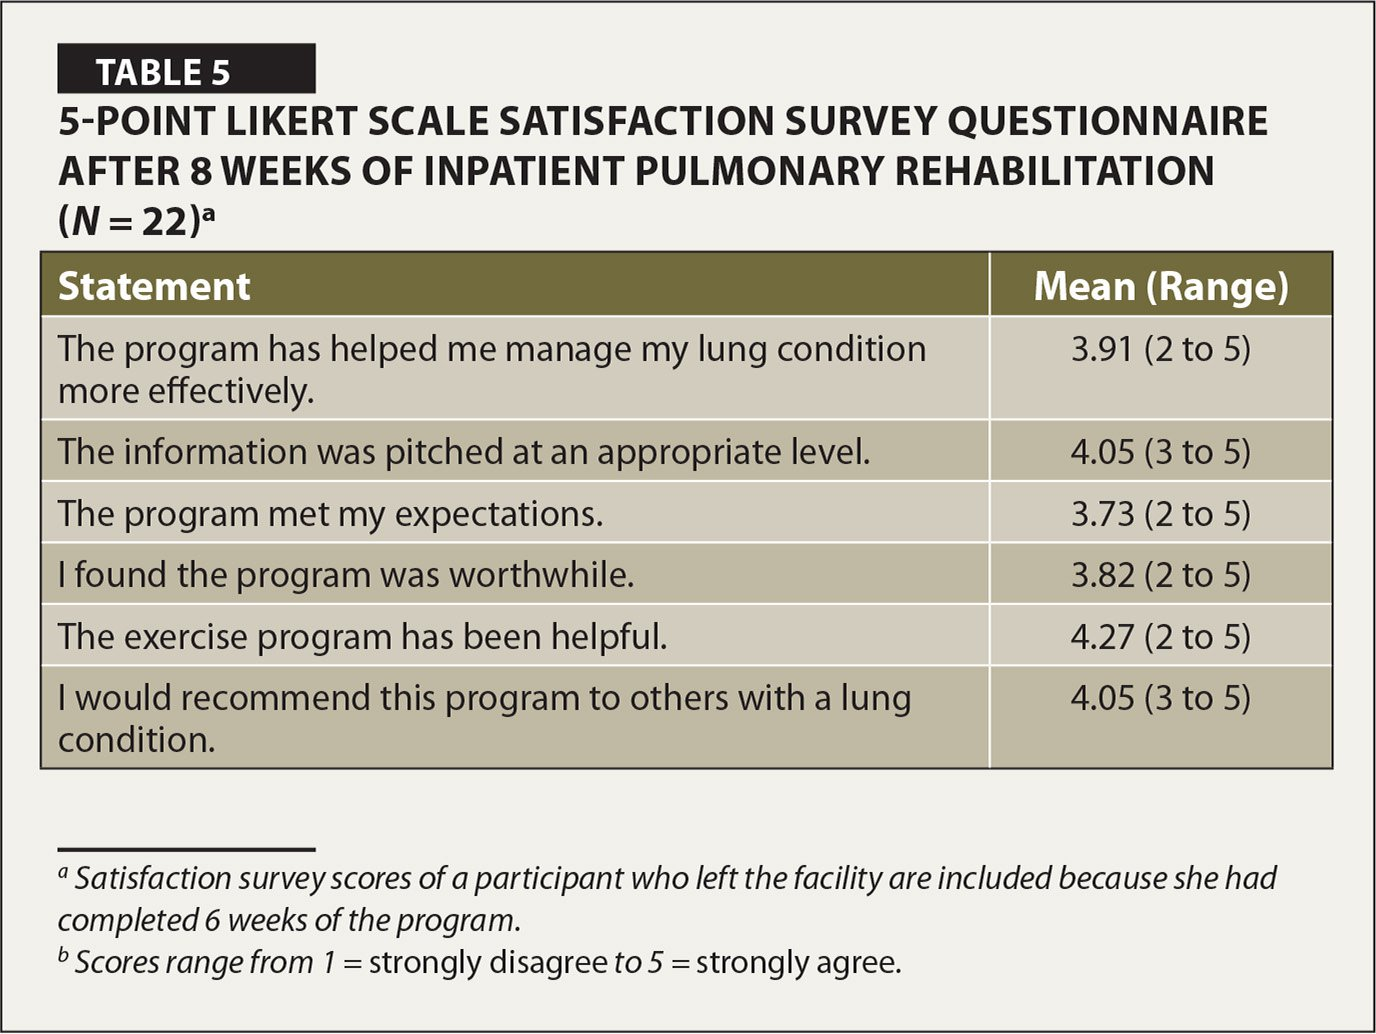 5-Point Likert Scale Satisfaction Survey Questionnaire after 8 Weeks of Inpatient Pulmonary Rehabilitation (N = 22)a